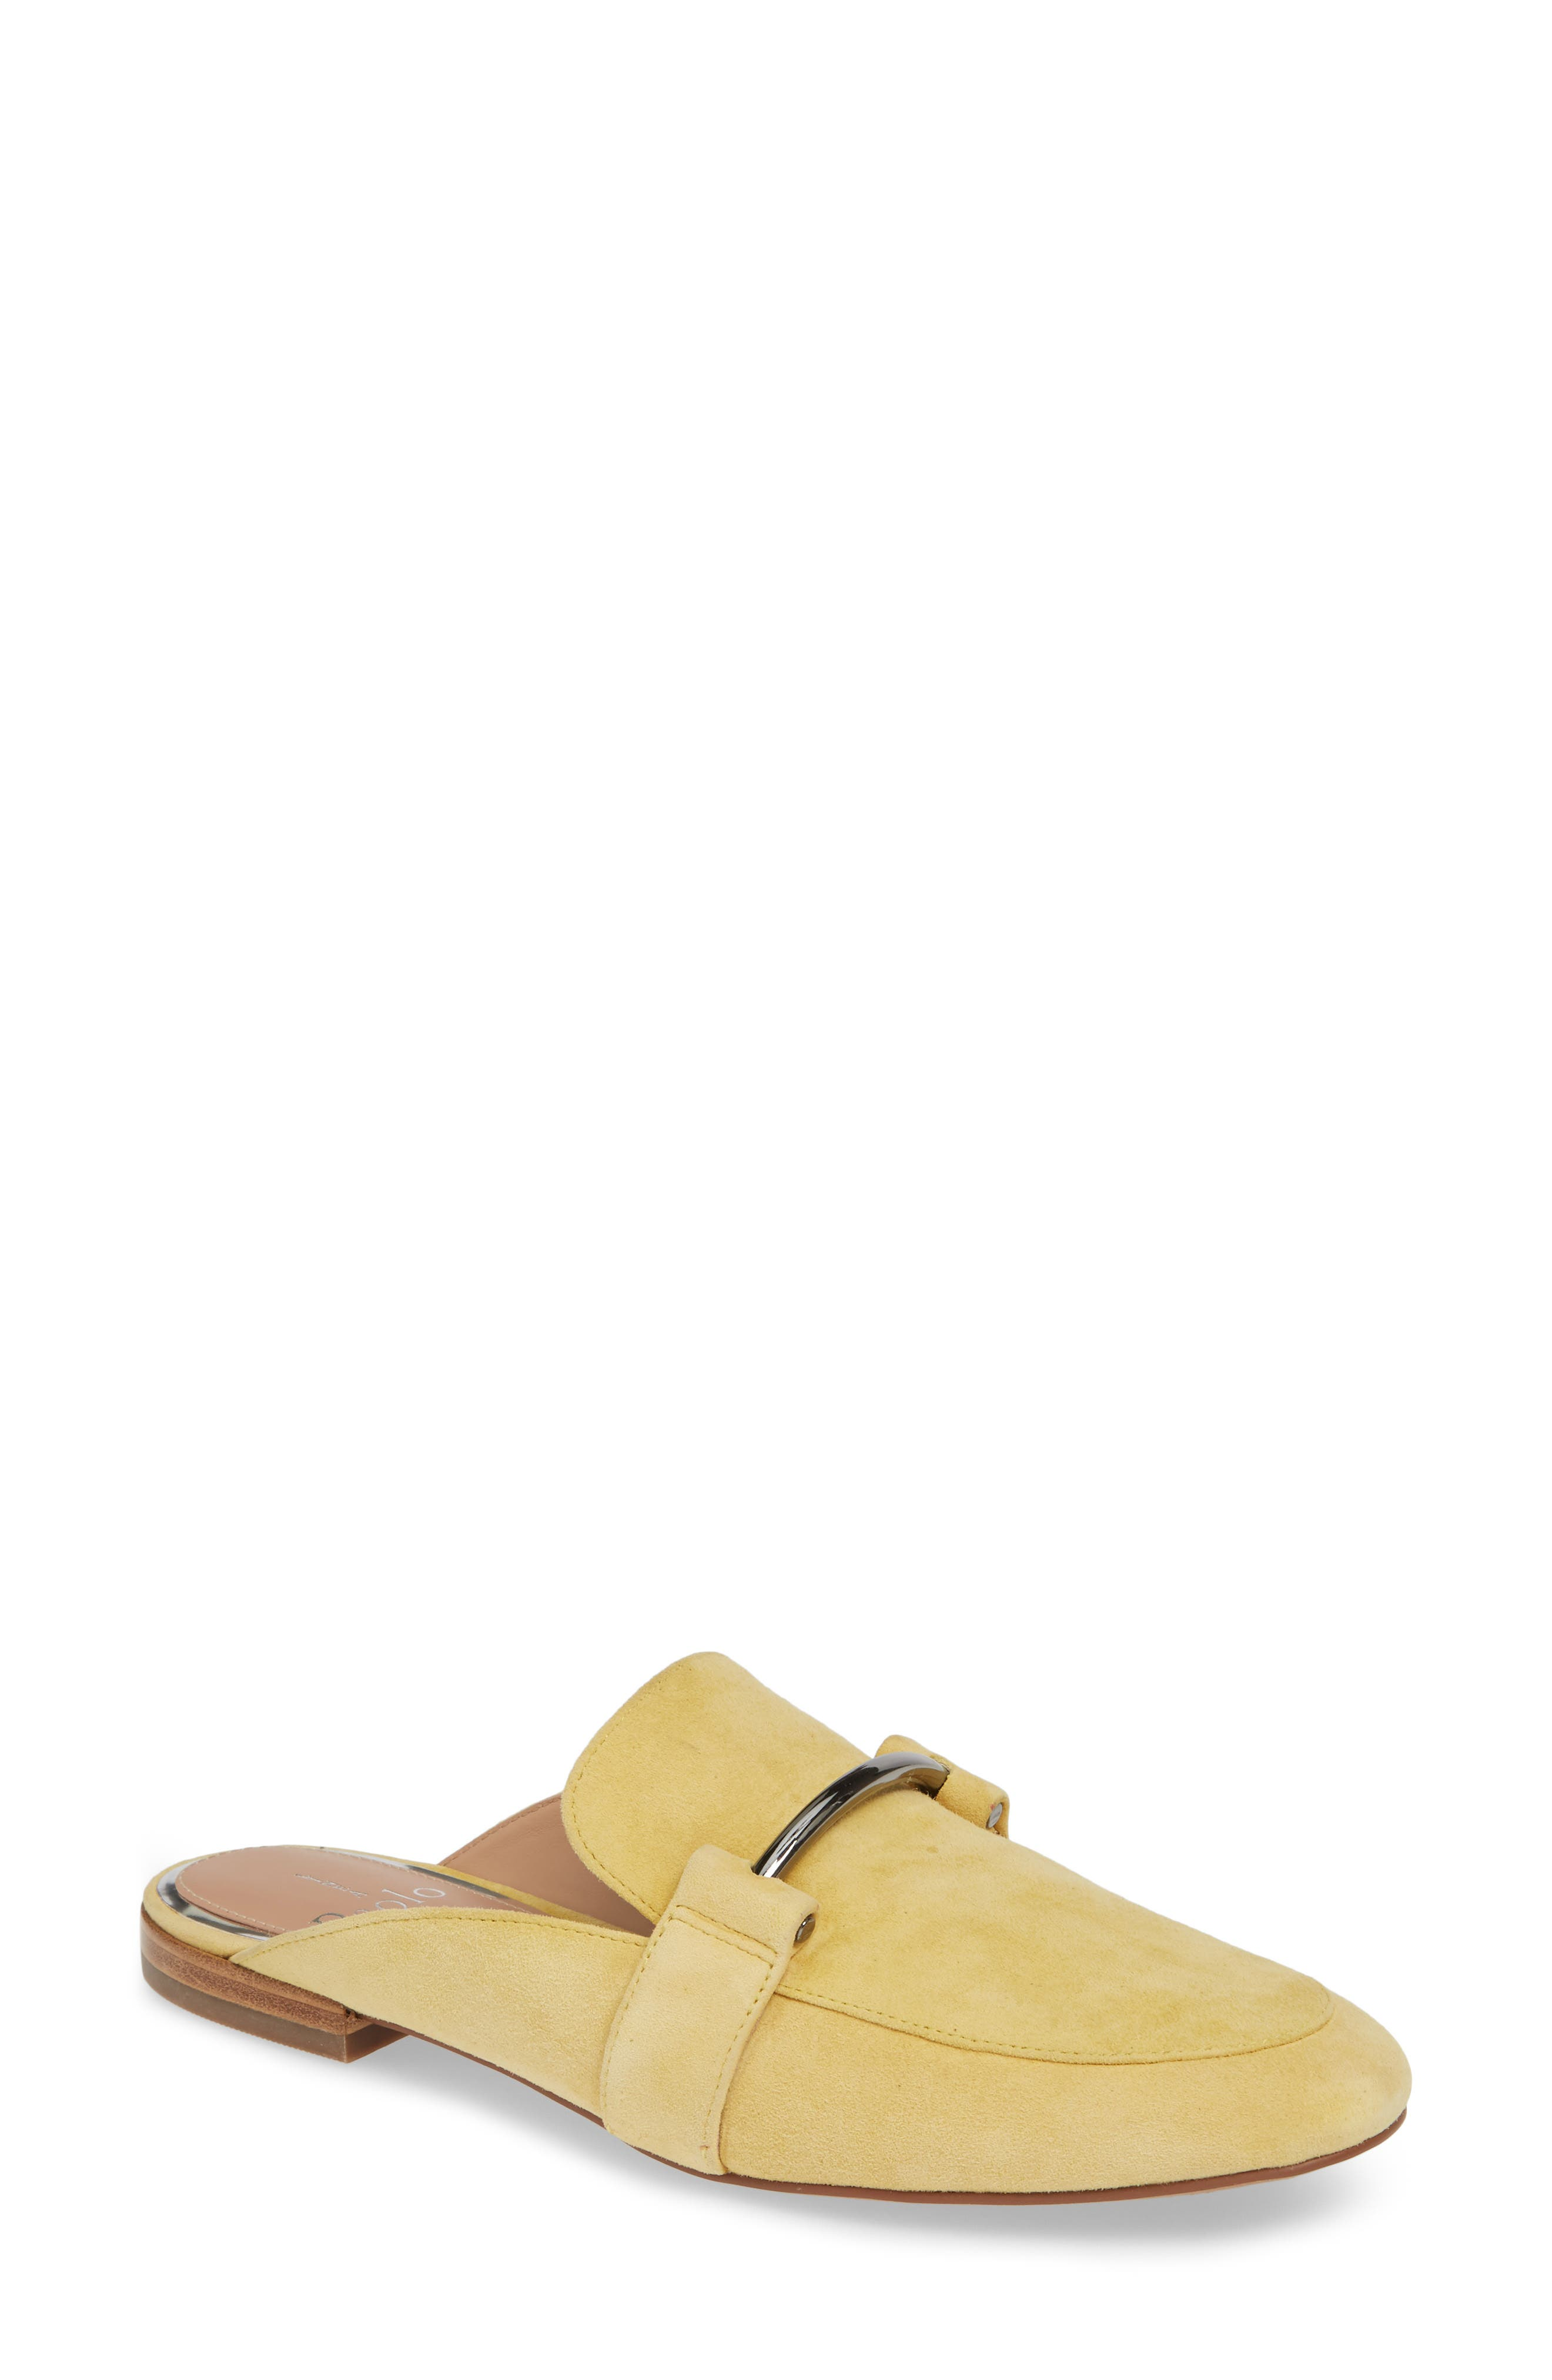 Linea Paolo Annette Loafer Mule, Yellow